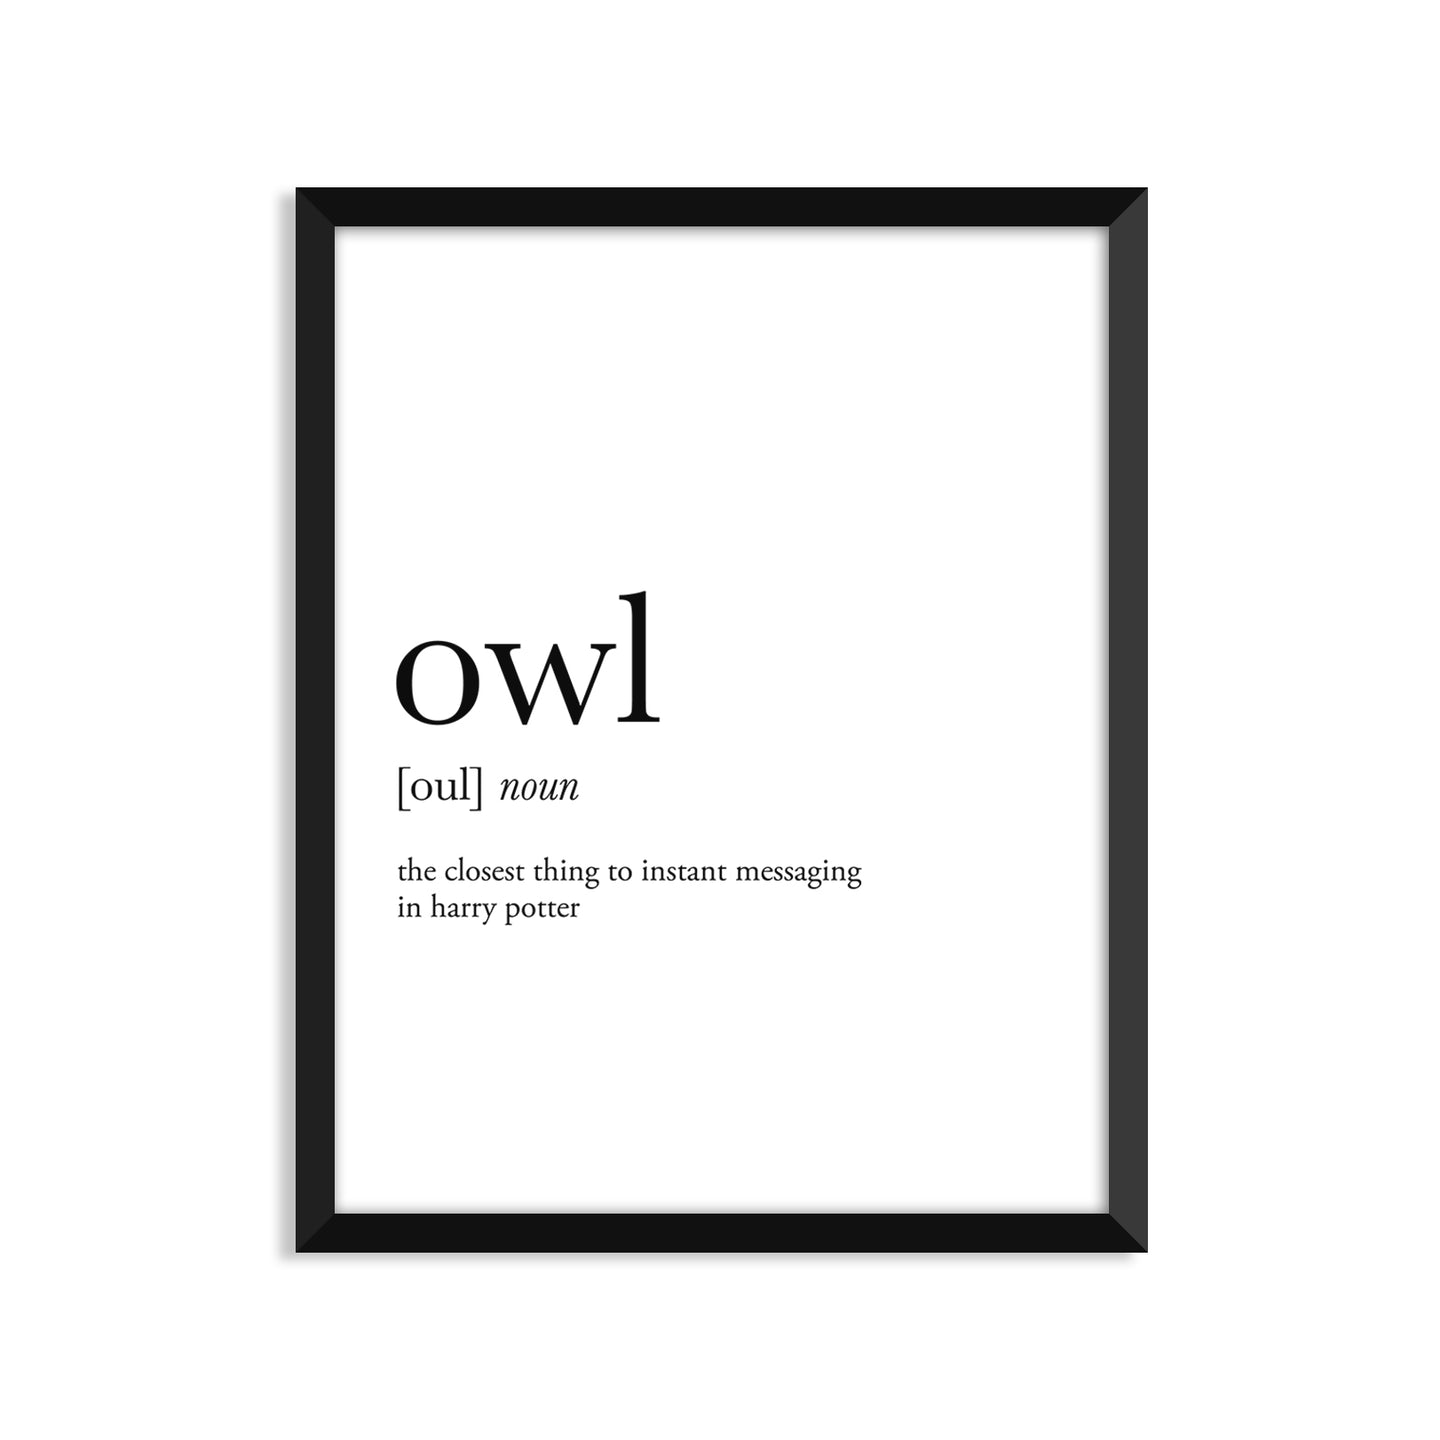 Owl definition art print or greeting card